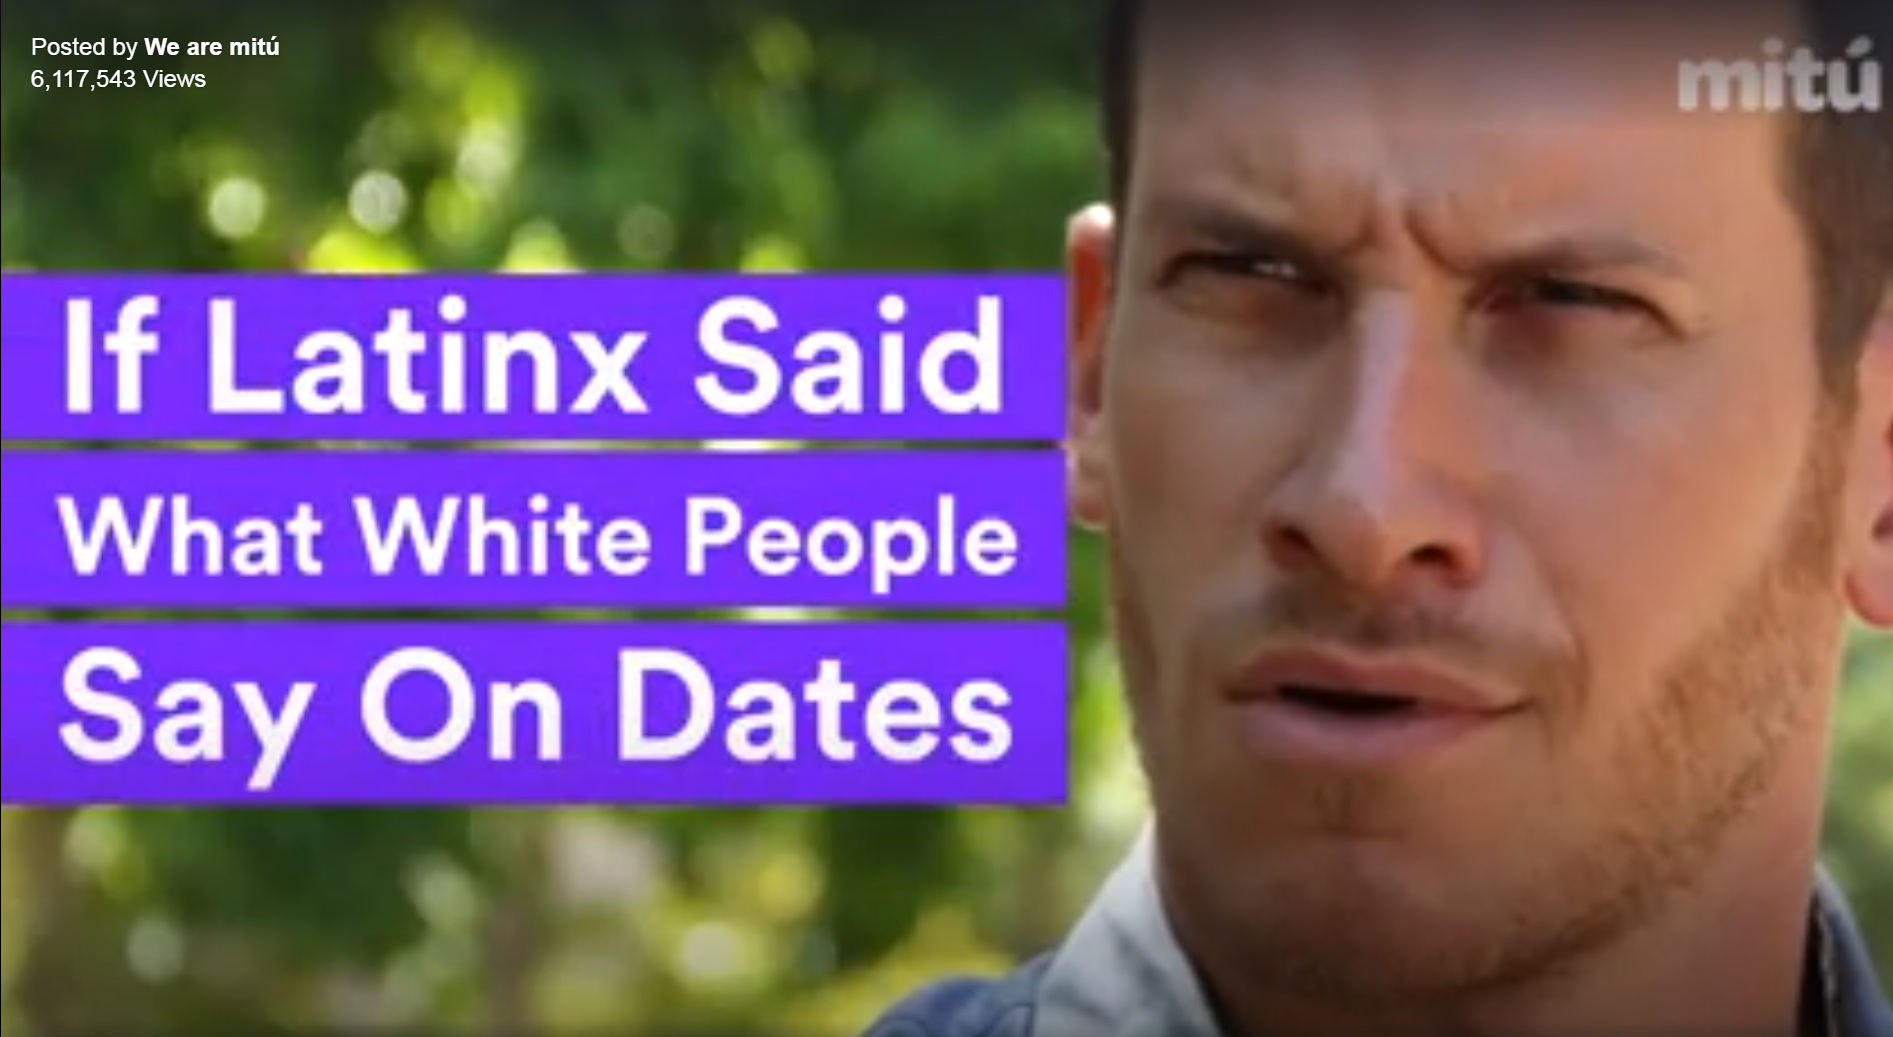 We Are Mitu – If Latins Said What White People Say on Dates